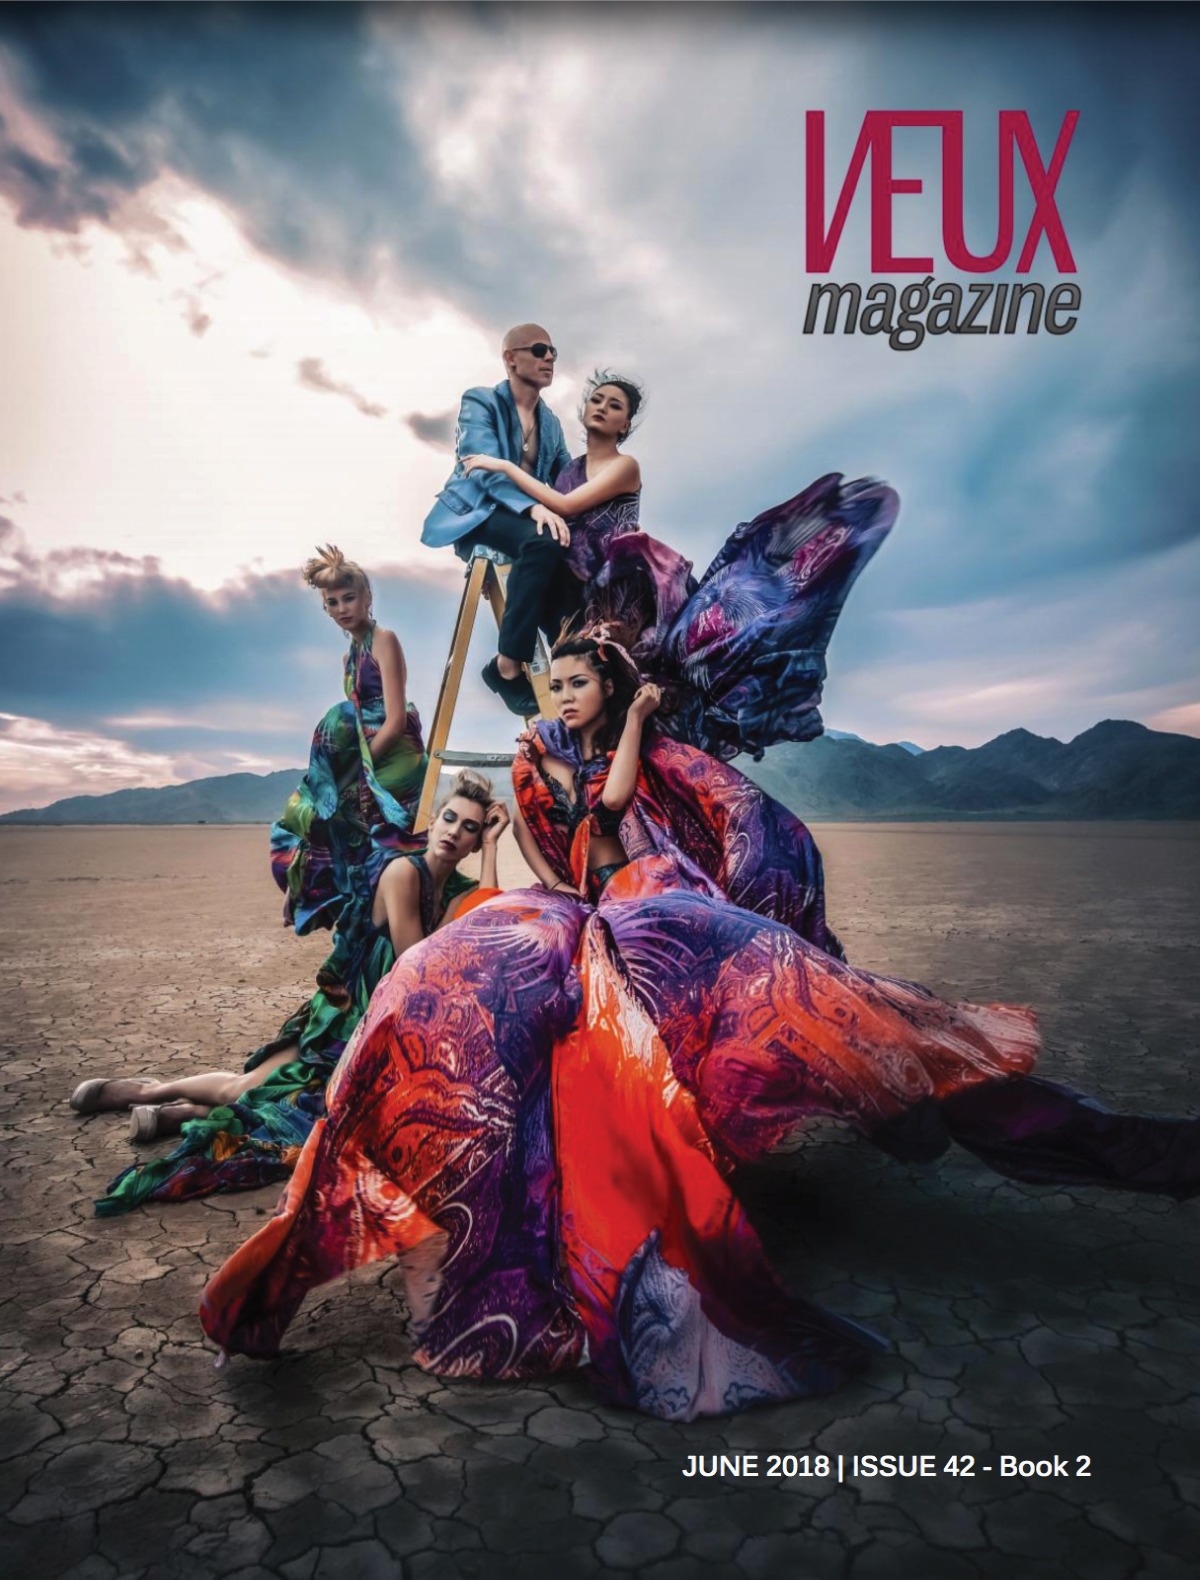 Veux Magazine Cover with four models in colorful big dresses posing in the dessert